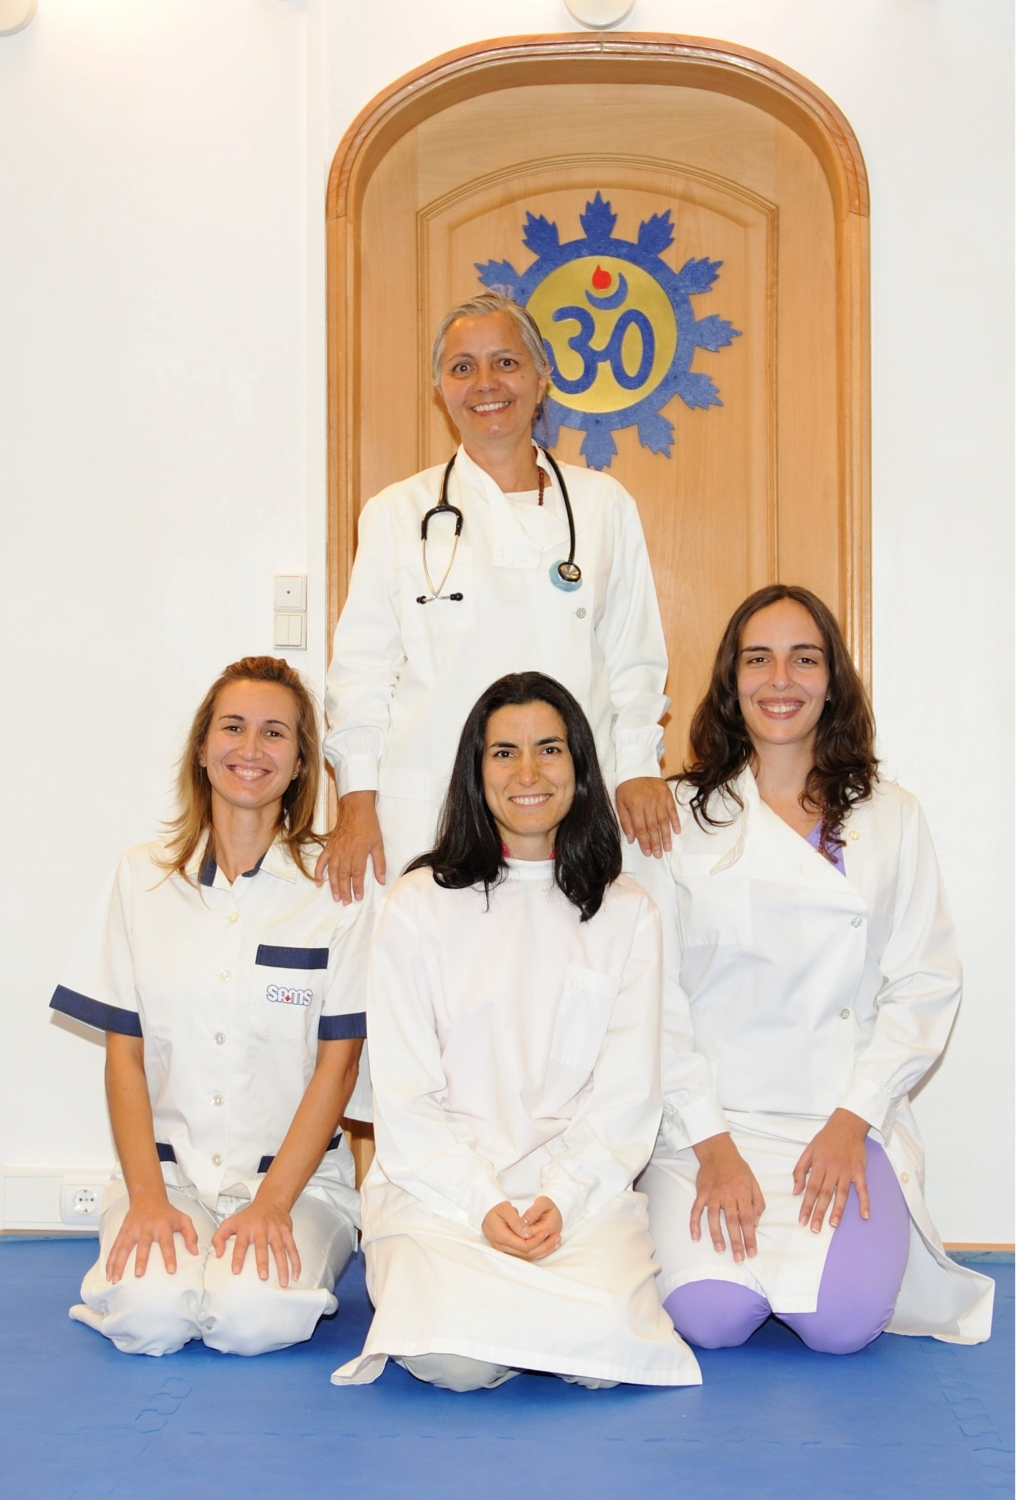 Medical and Ayurveda Department of Portuguese Yoga Confederation - The Director, Dr. Alice Paulo, and Paramedical Personnel